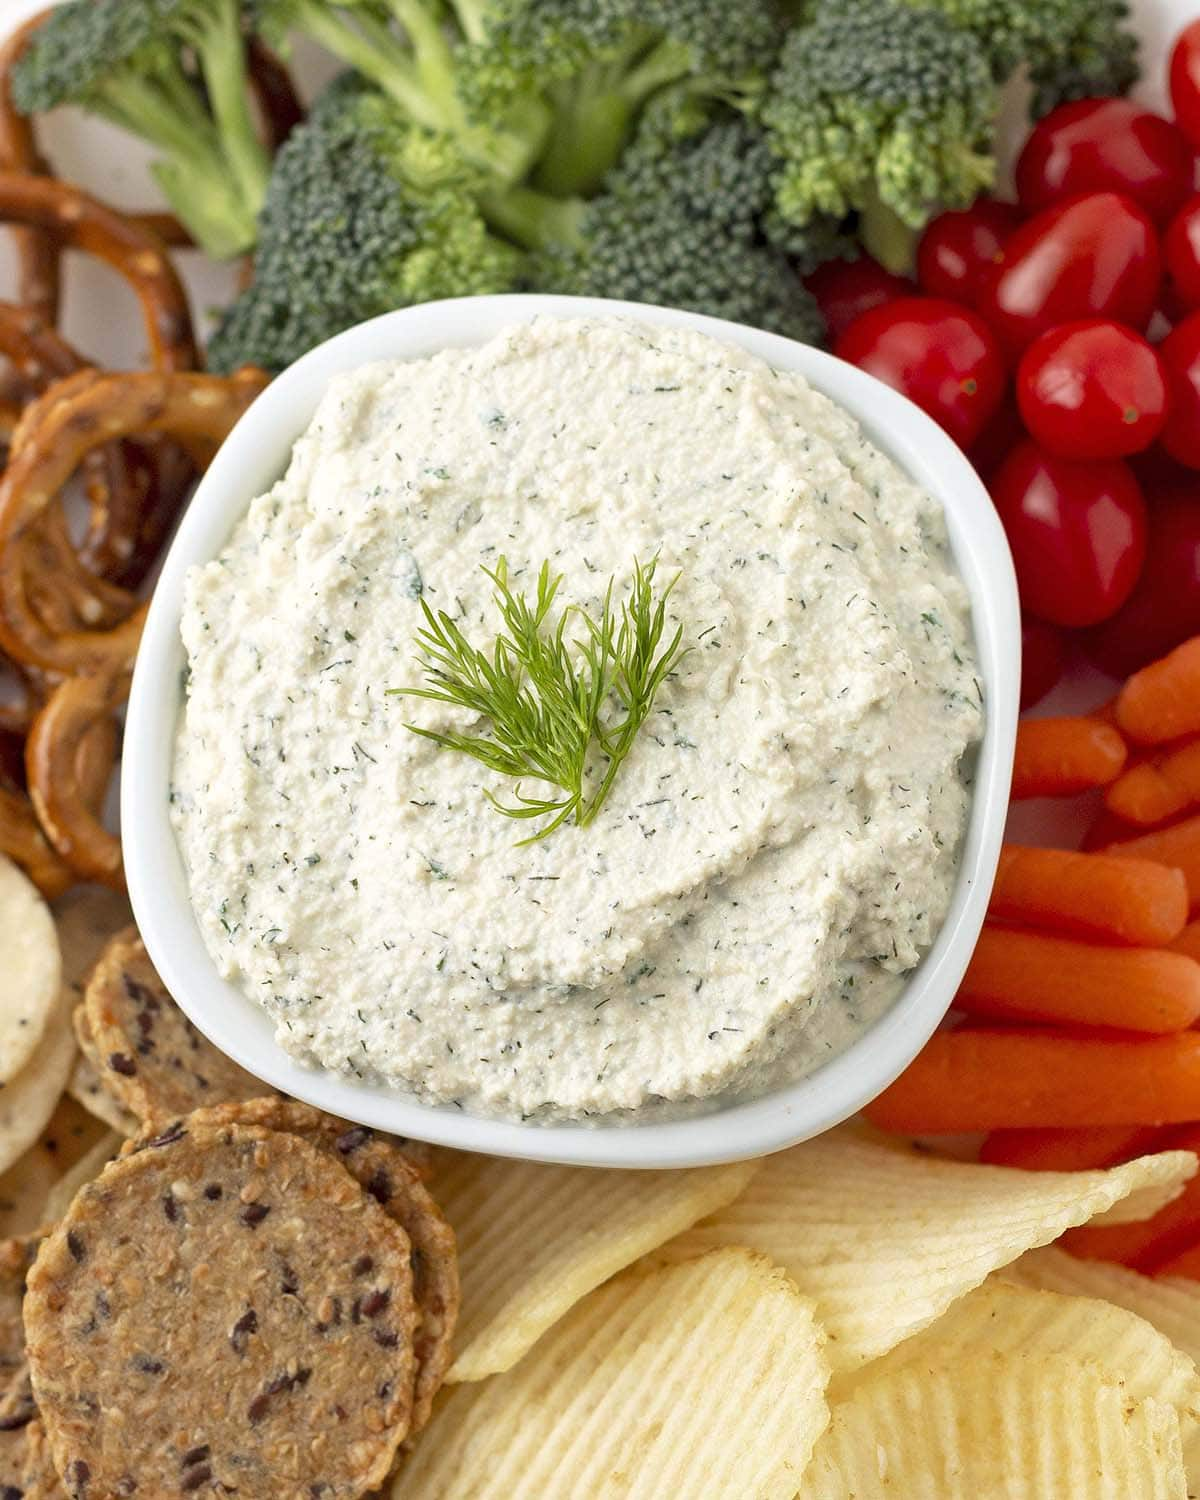 An overhead shot of a bowl of dill dip, the bowl is surrounded by fresh vegetables, chips, and crackers.